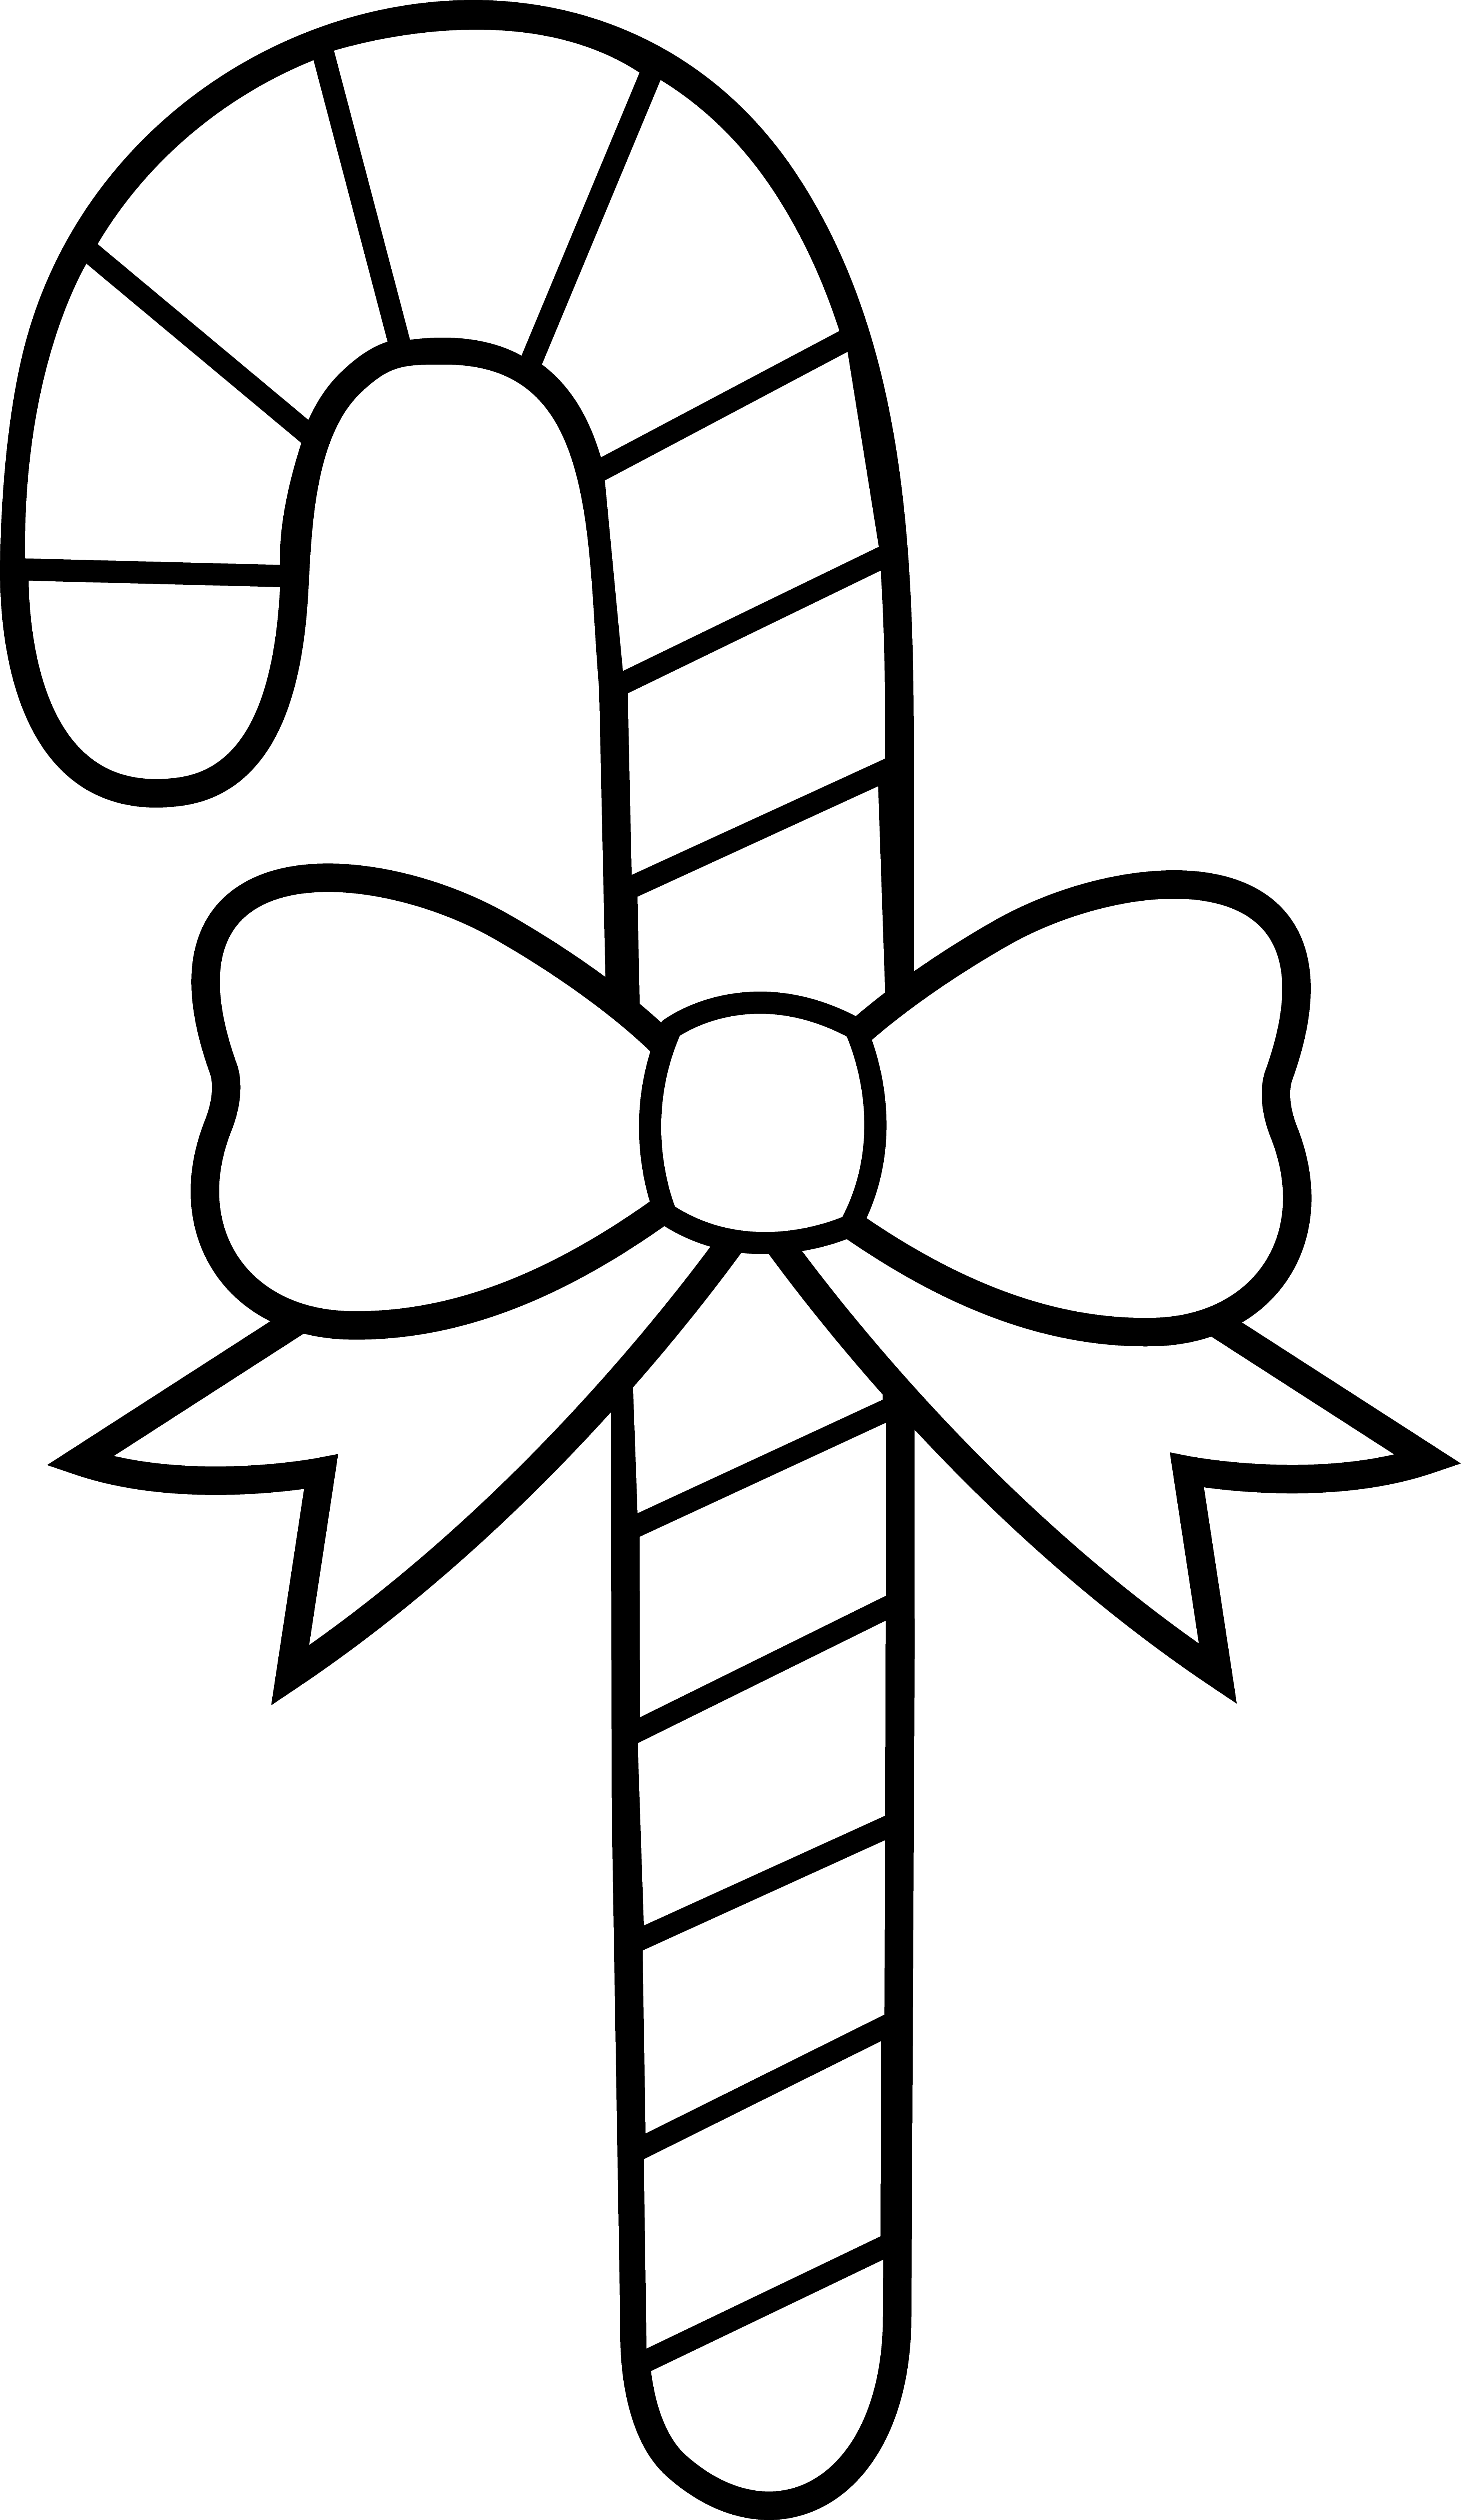 3842x6628 Candy Cane clipart black and white